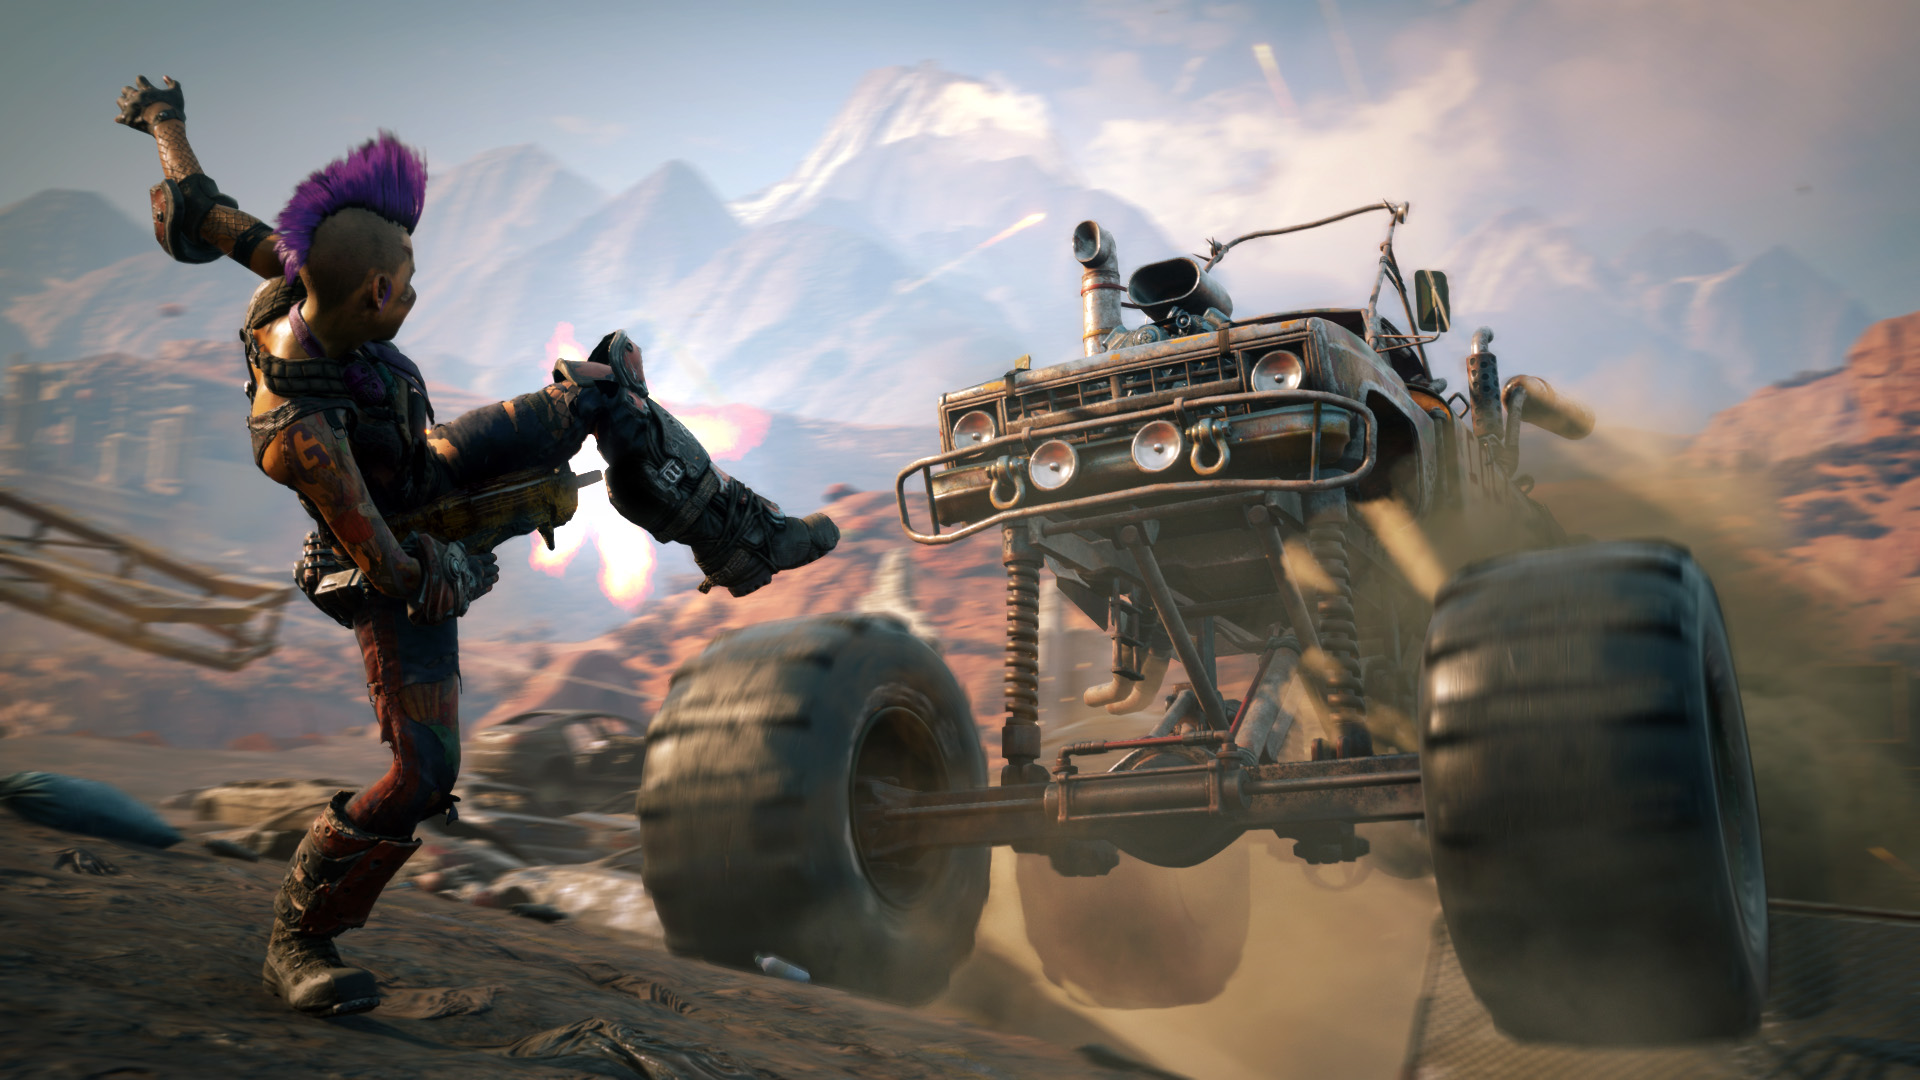 RAGE 2 Gameplay Screenshot 3. Bild: Bethesda